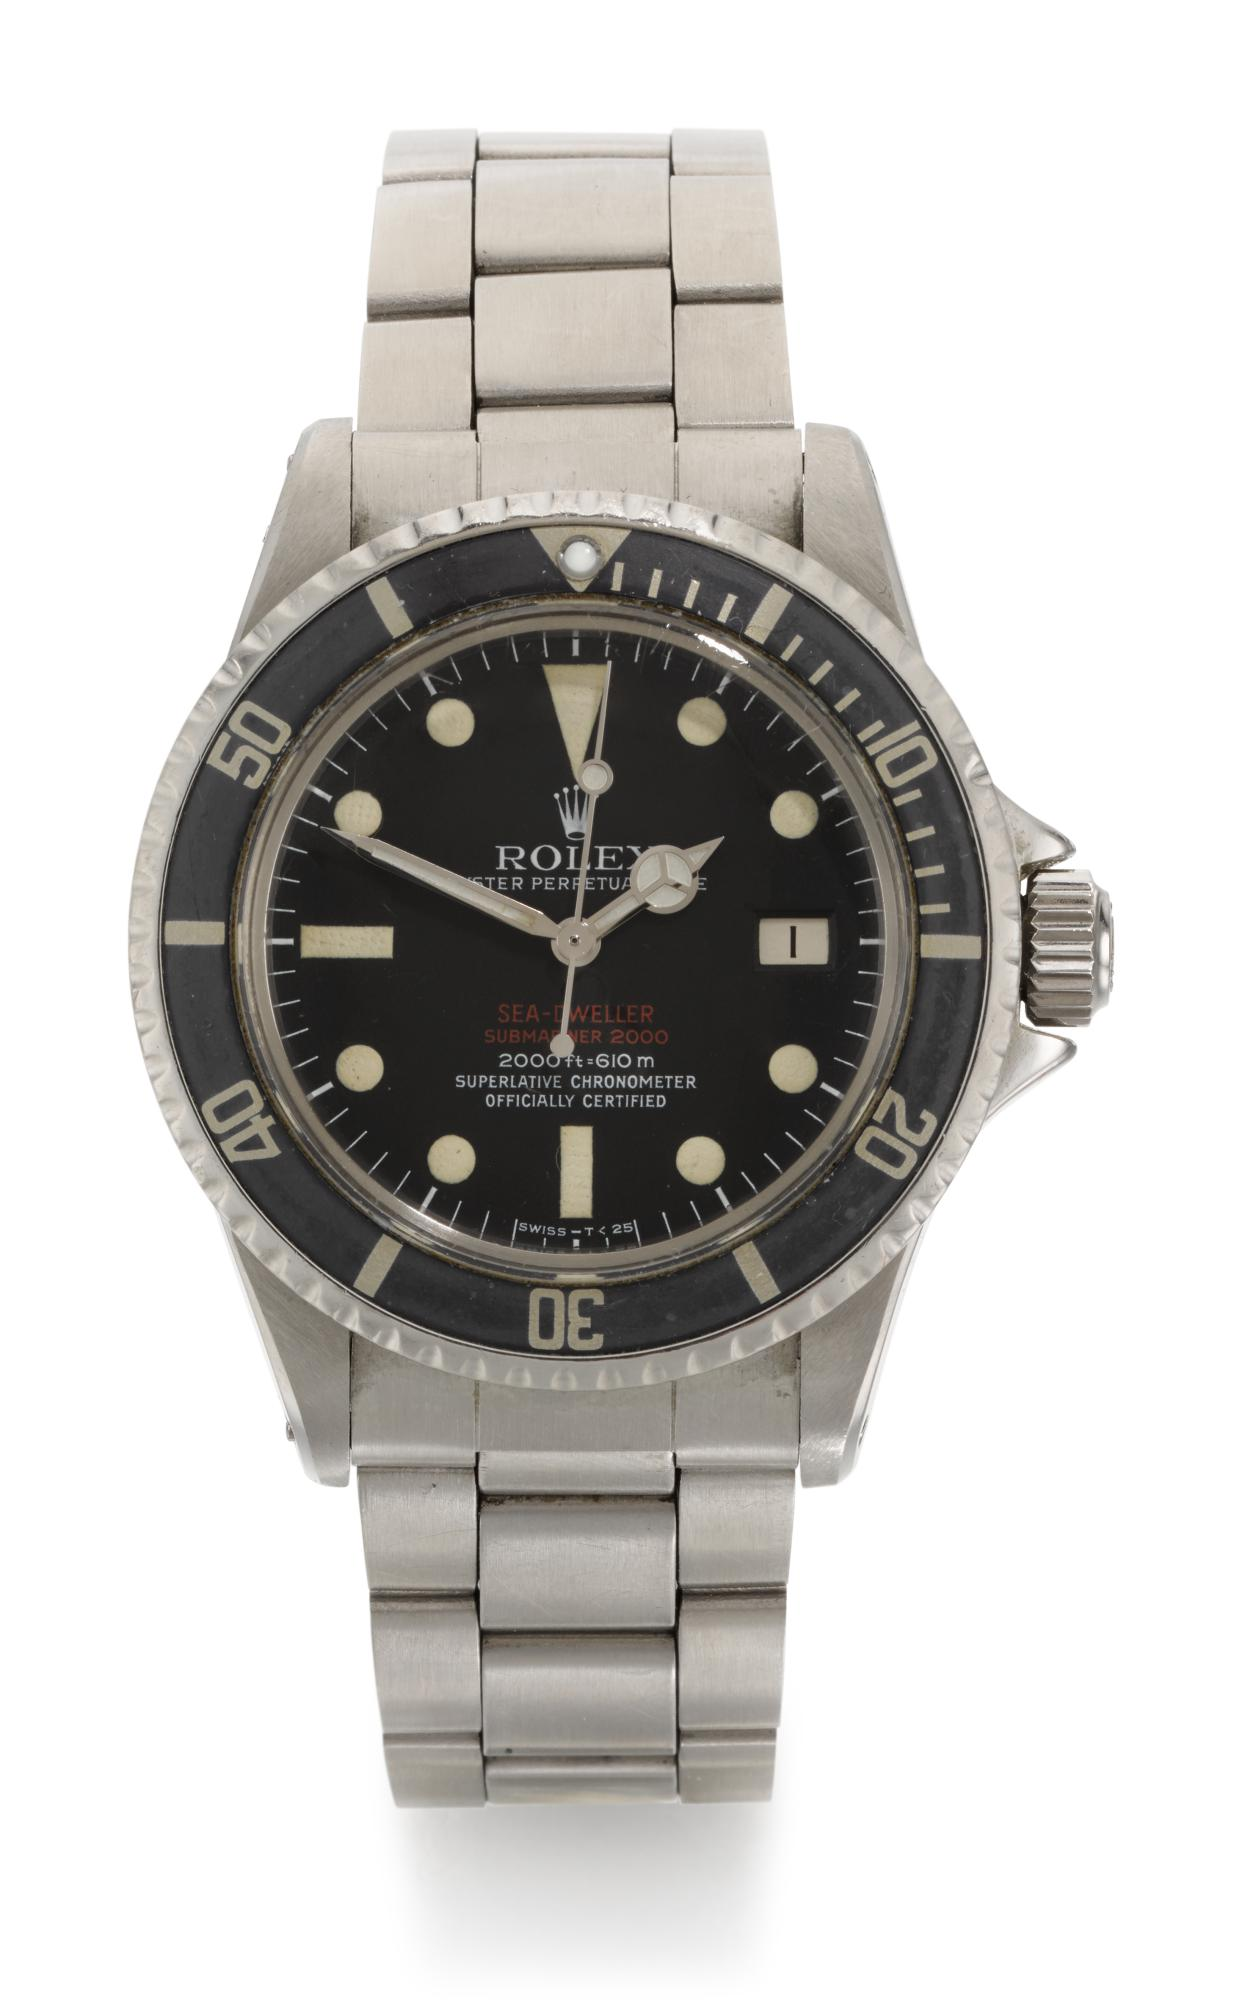 ROLEX | SEA-DWELLER DOUBLE RED, REFERENCE 1665, STAINLESS STEEL WRISTWATCH WITH HELIUM ESCAPE VALVE, DATE AND BRACELET, CIRCA 1967